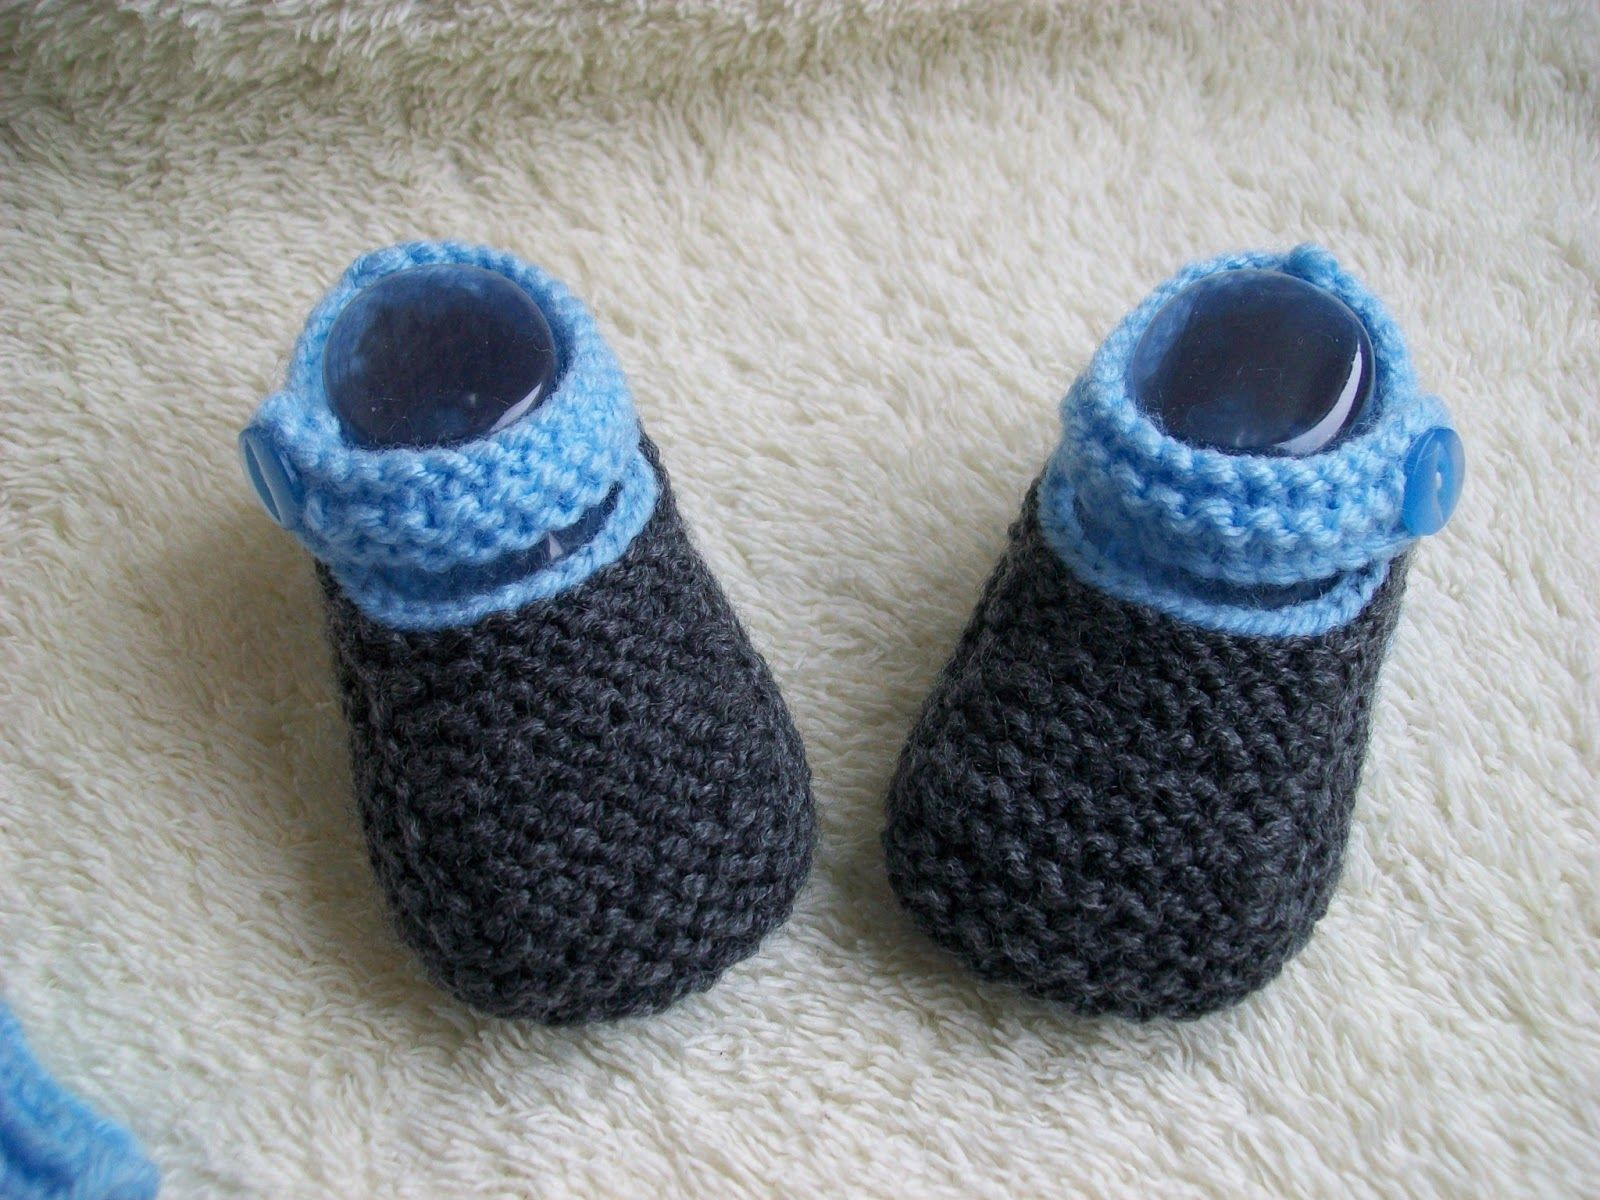 Knitting and crochet baby booties pattern baby kids knitting and crochet baby booties pattern bankloansurffo Choice Image